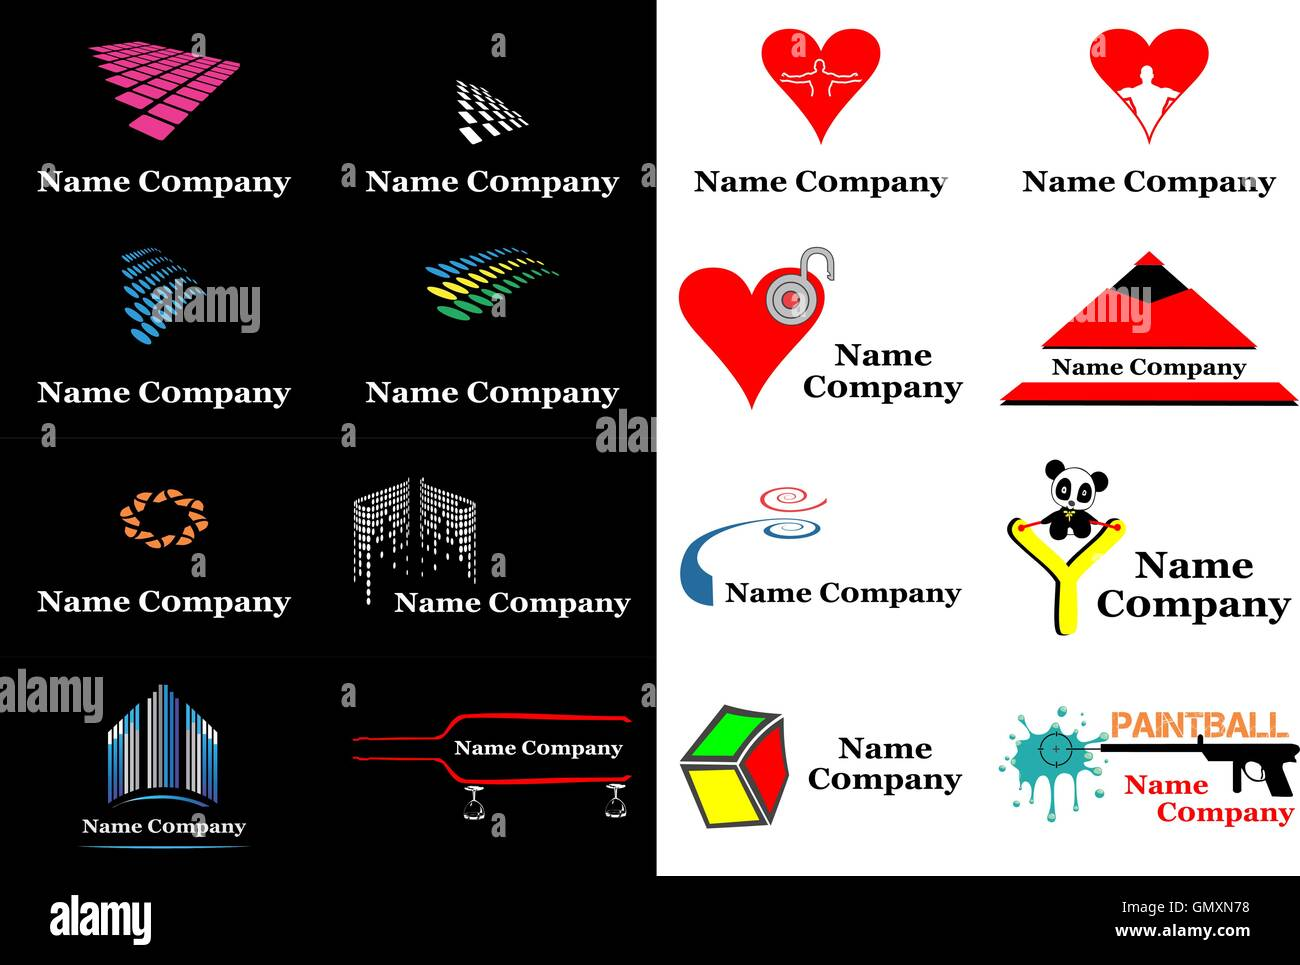 Company Logos Stock Photos & Company Logos Stock Images - Alamy